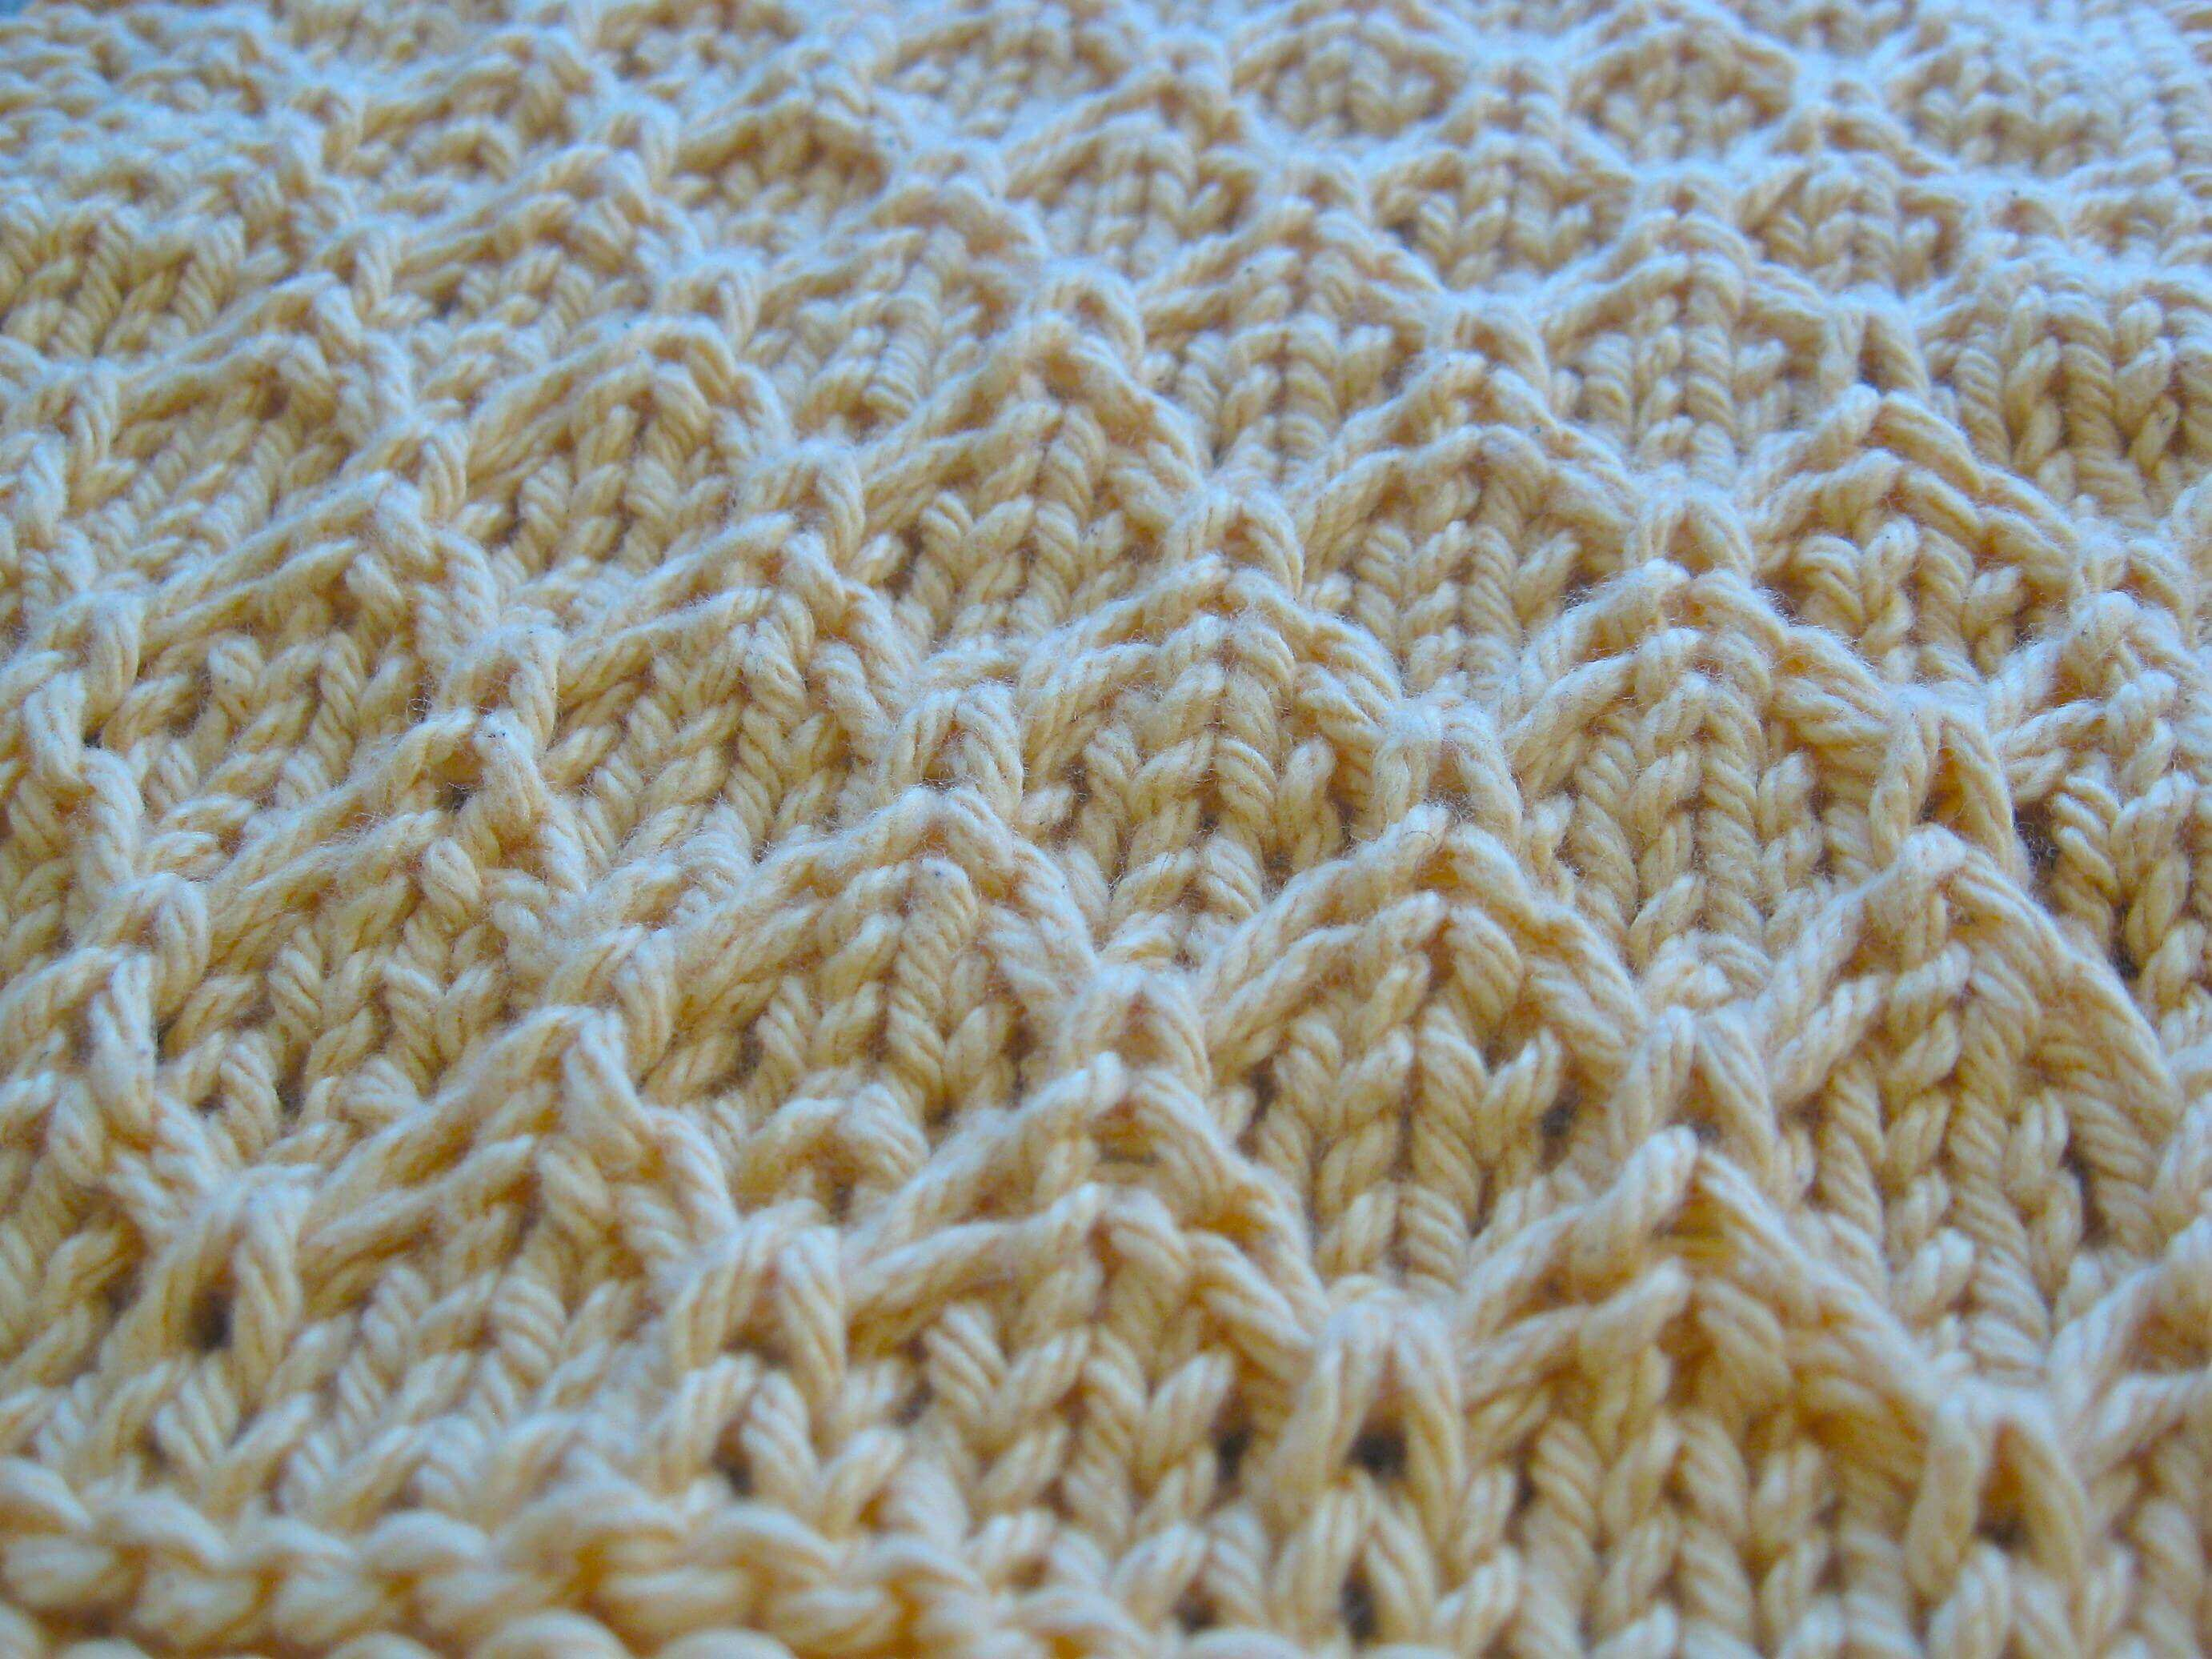 Honeycomb Knitting Pattern : Knitted Honeycomb Dishcloth #1